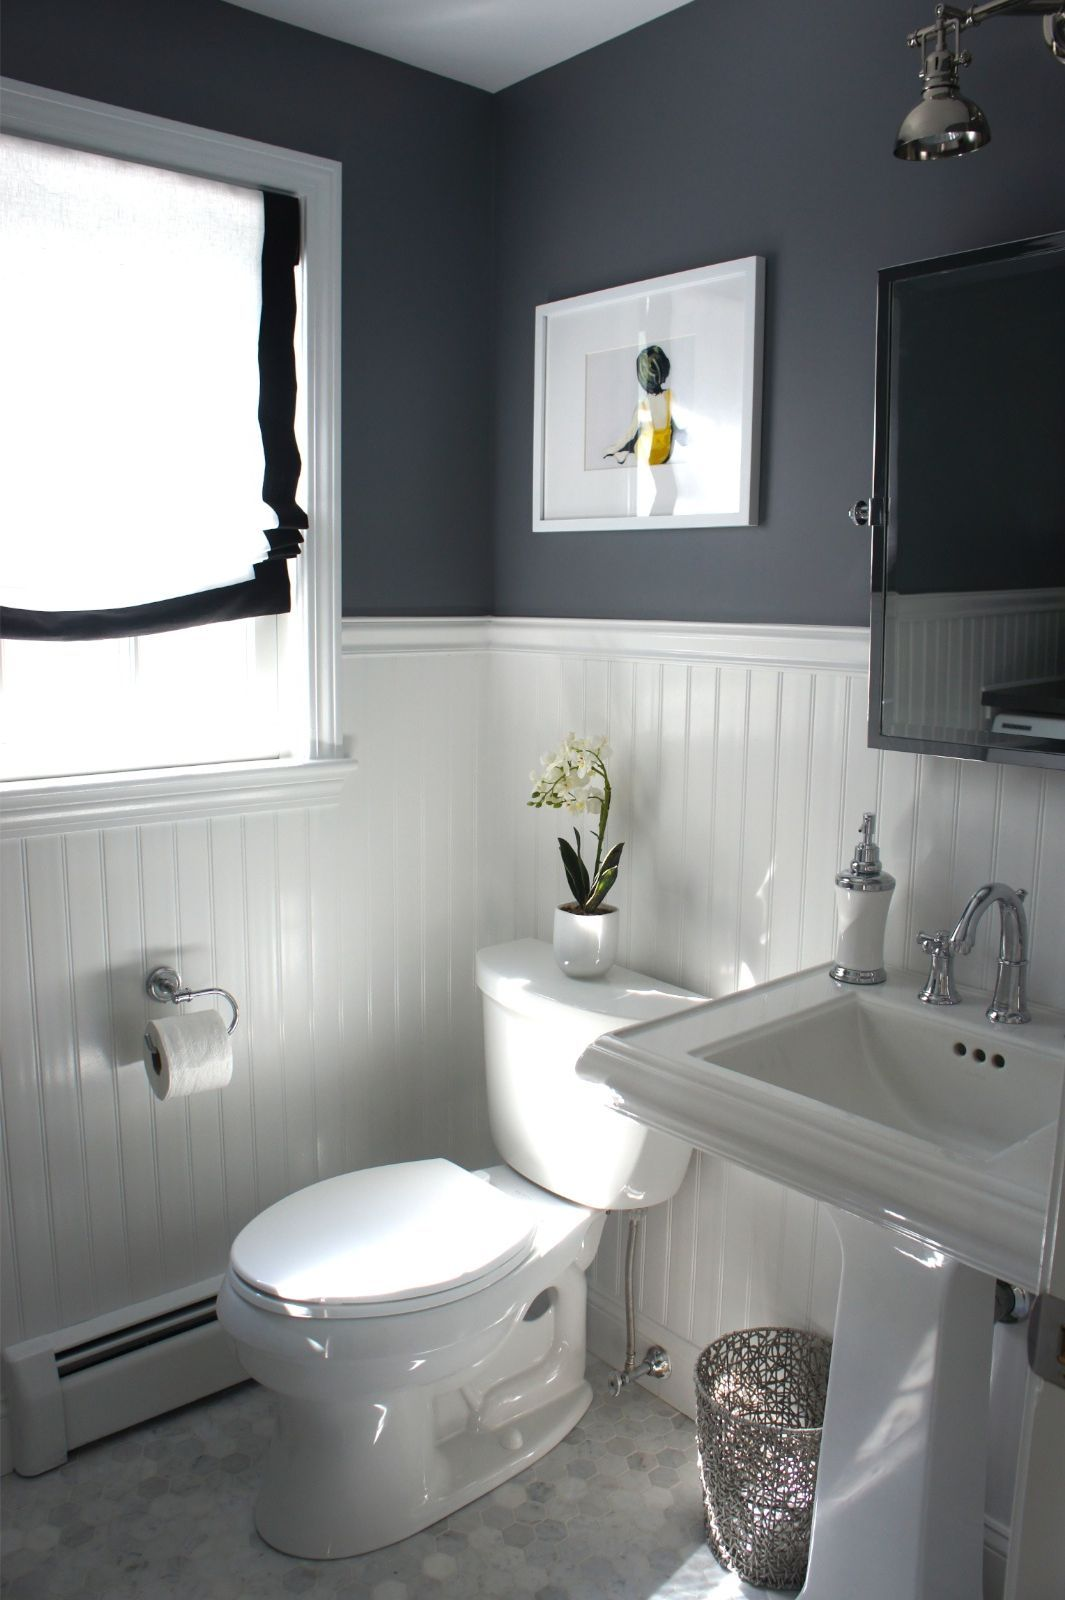 Inspiration Half Bathroom Design With Dark Wall And White Toilet